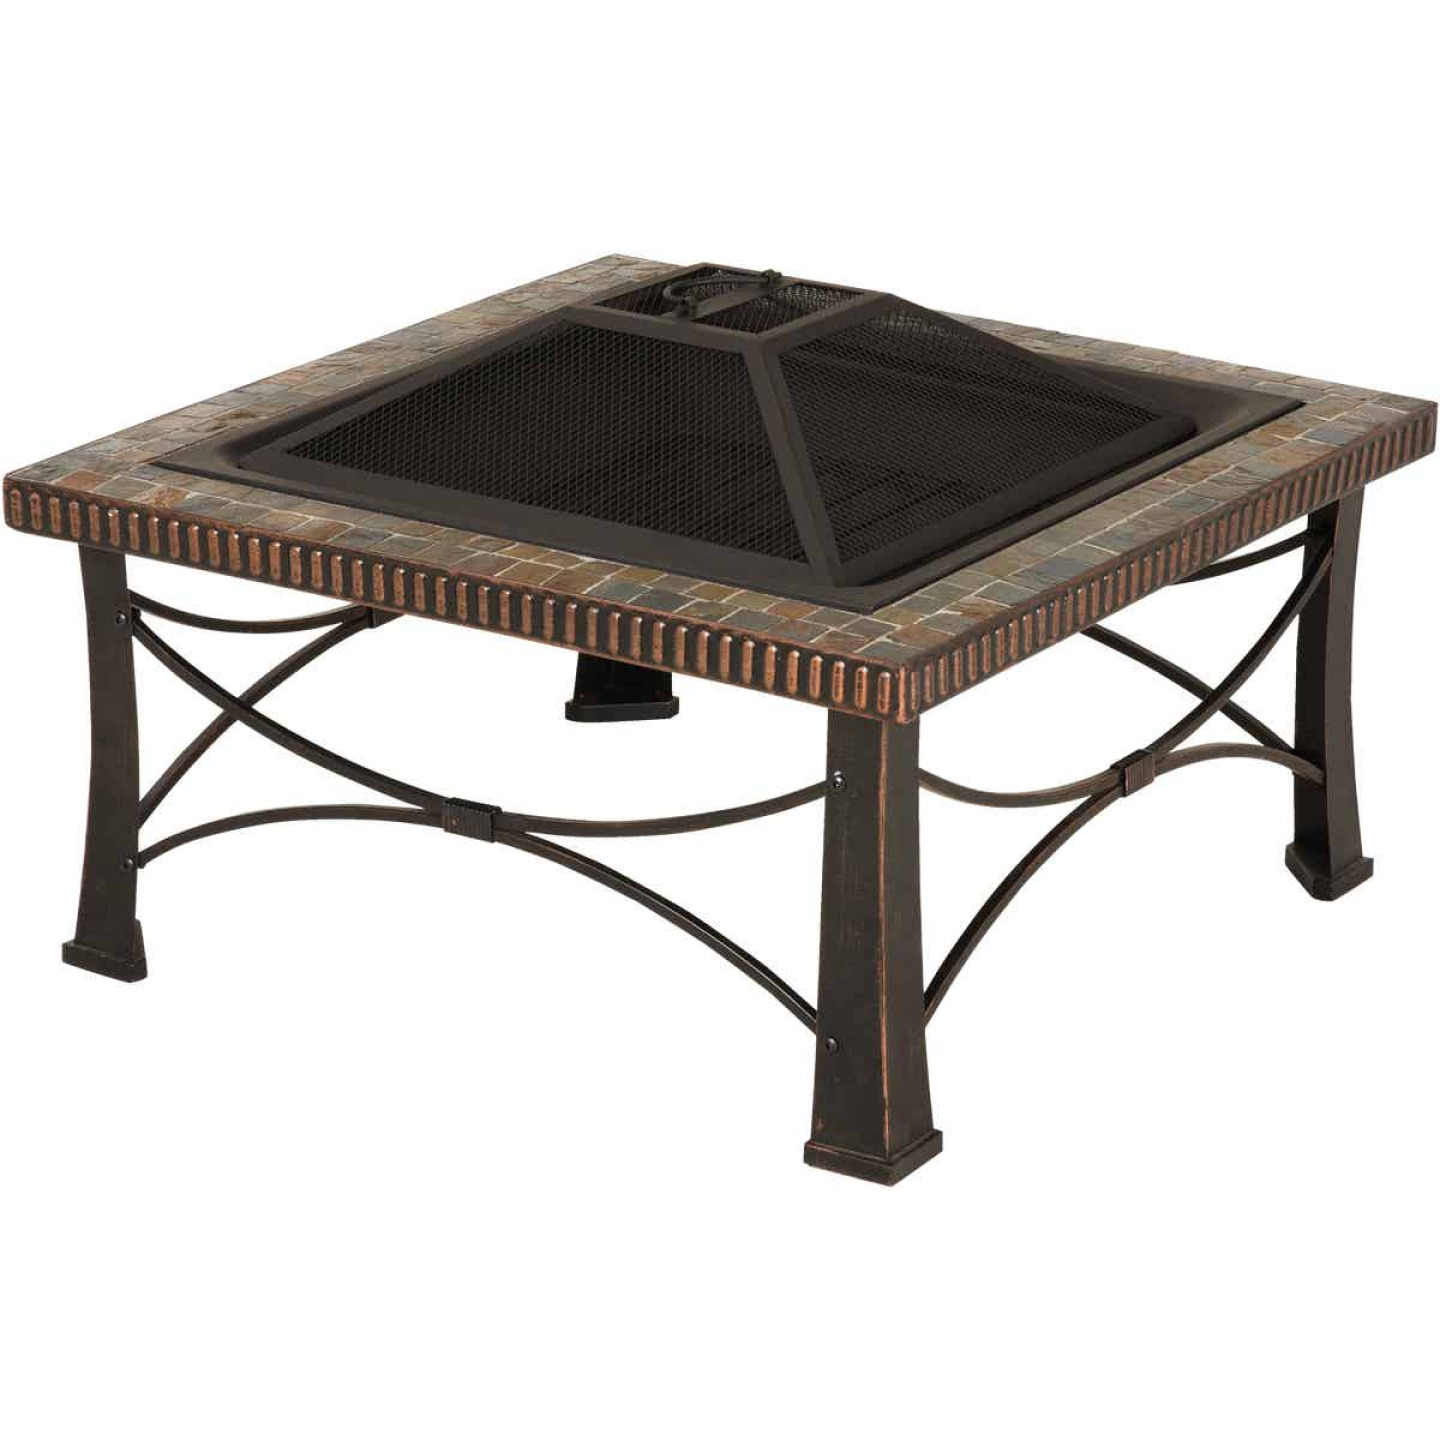 Outdoor Expressions 30 In. Slate Square Steel Fire Pit Image 1